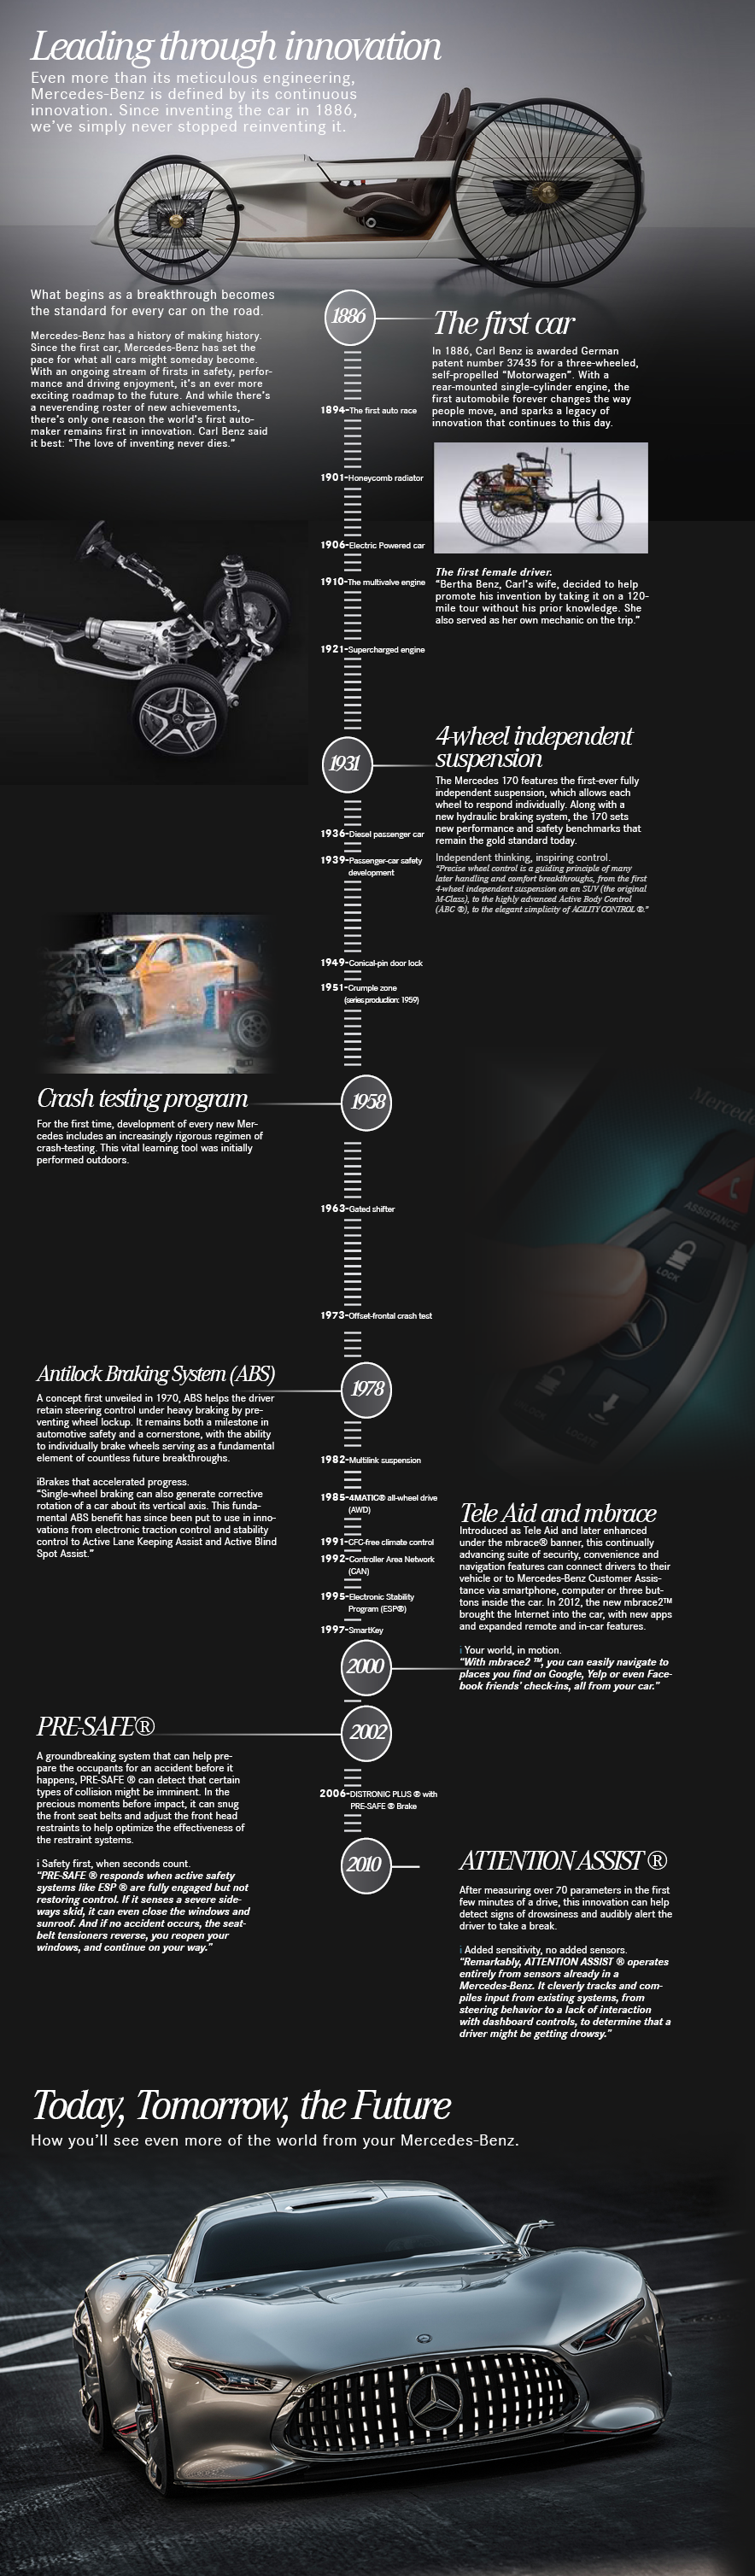 Mercedes-Benz Timeline Innovation